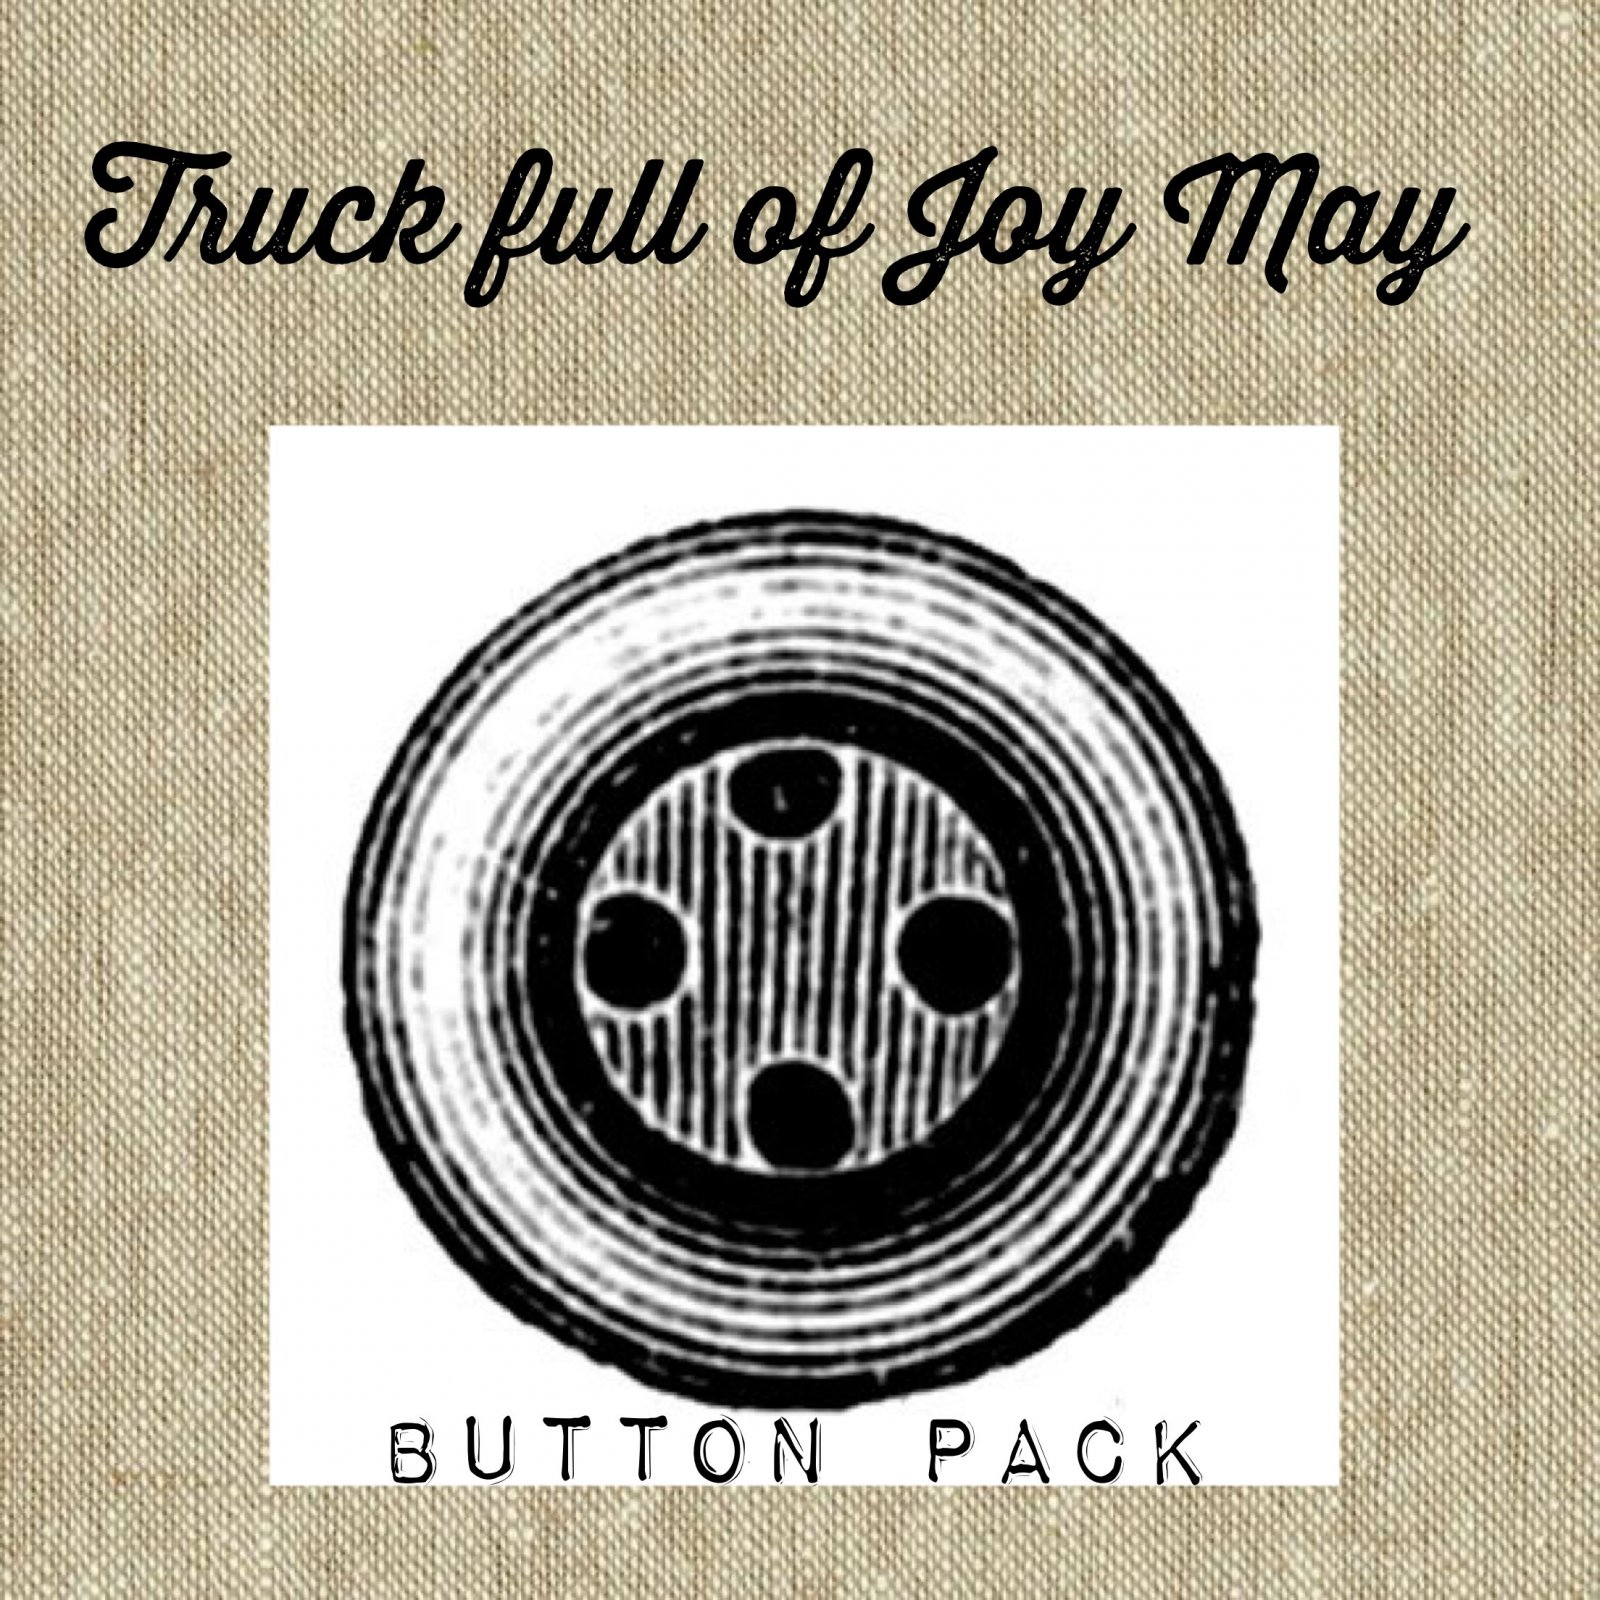 Trucks Full of Joy *May Button Pack